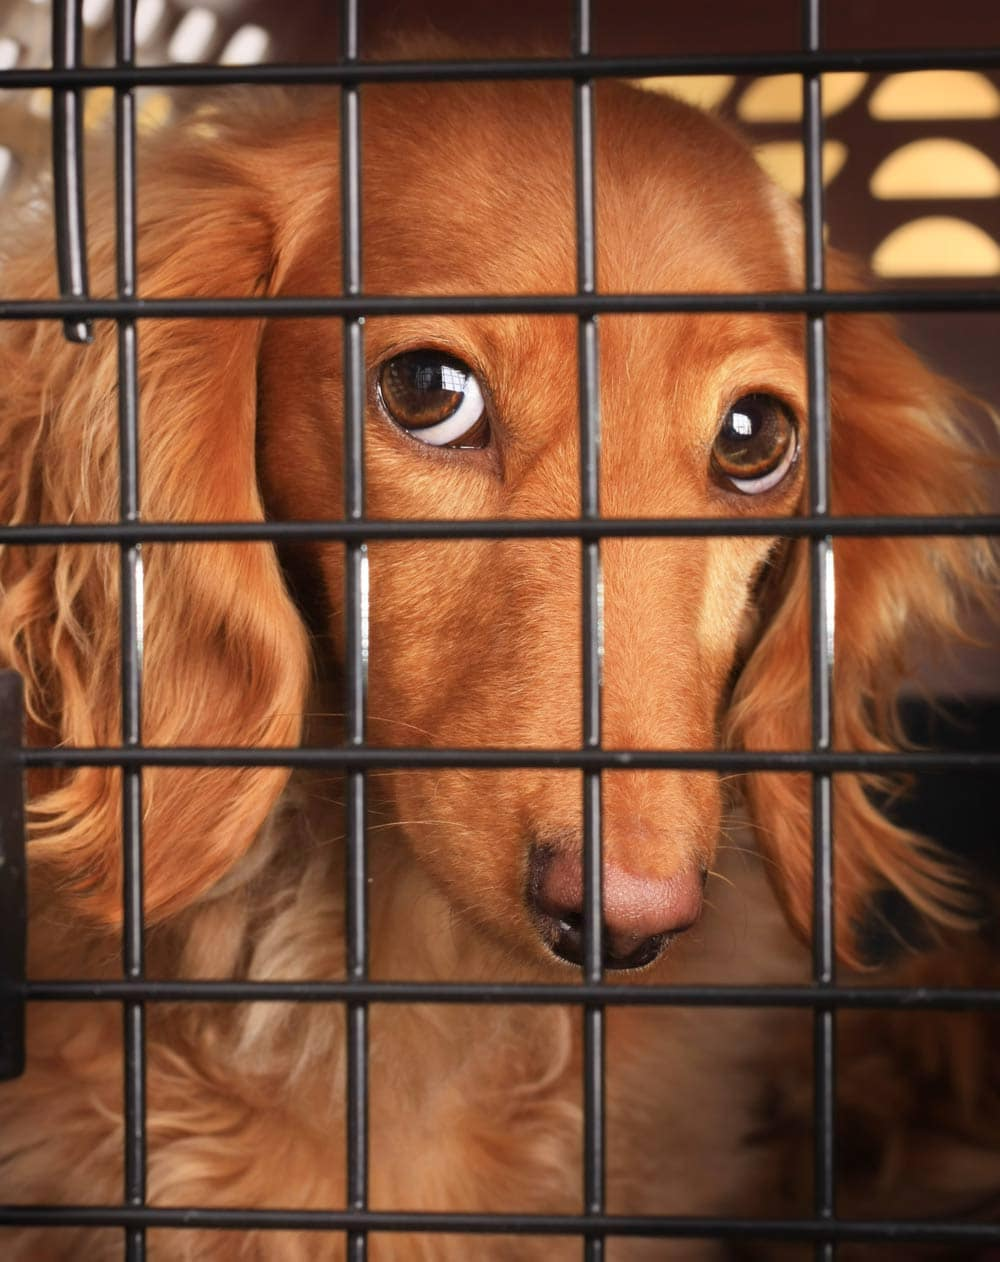 Dachshund in a crate